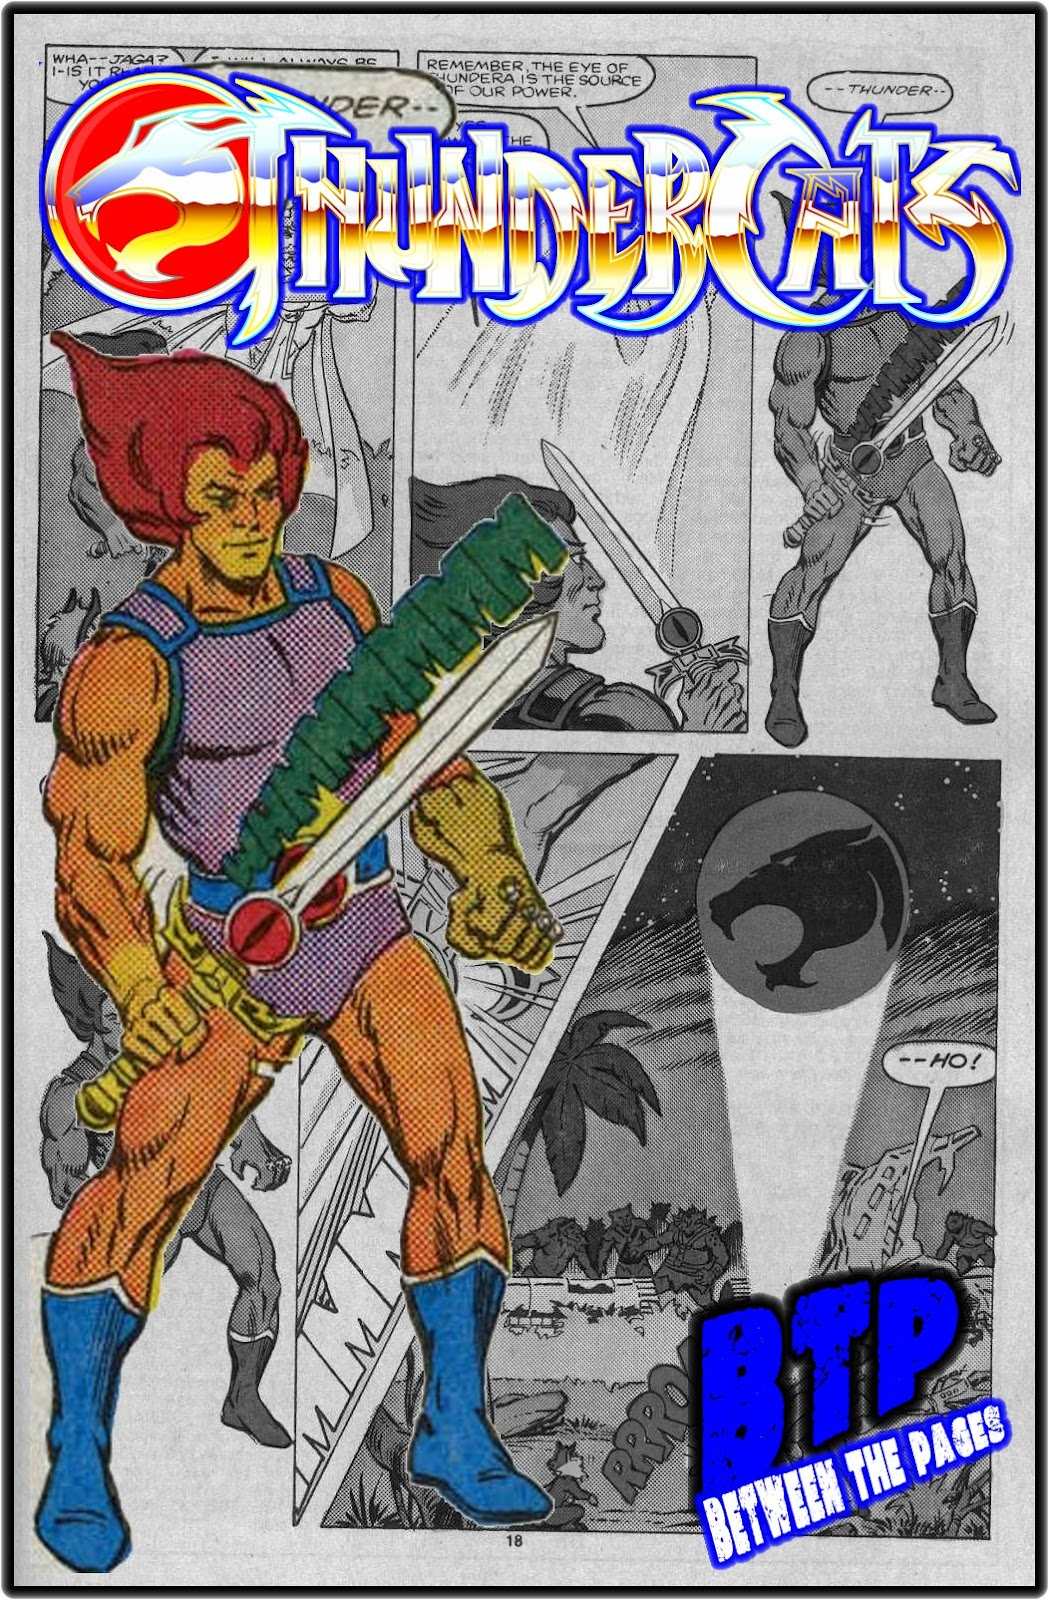 Lion-O and The Sword of Omens